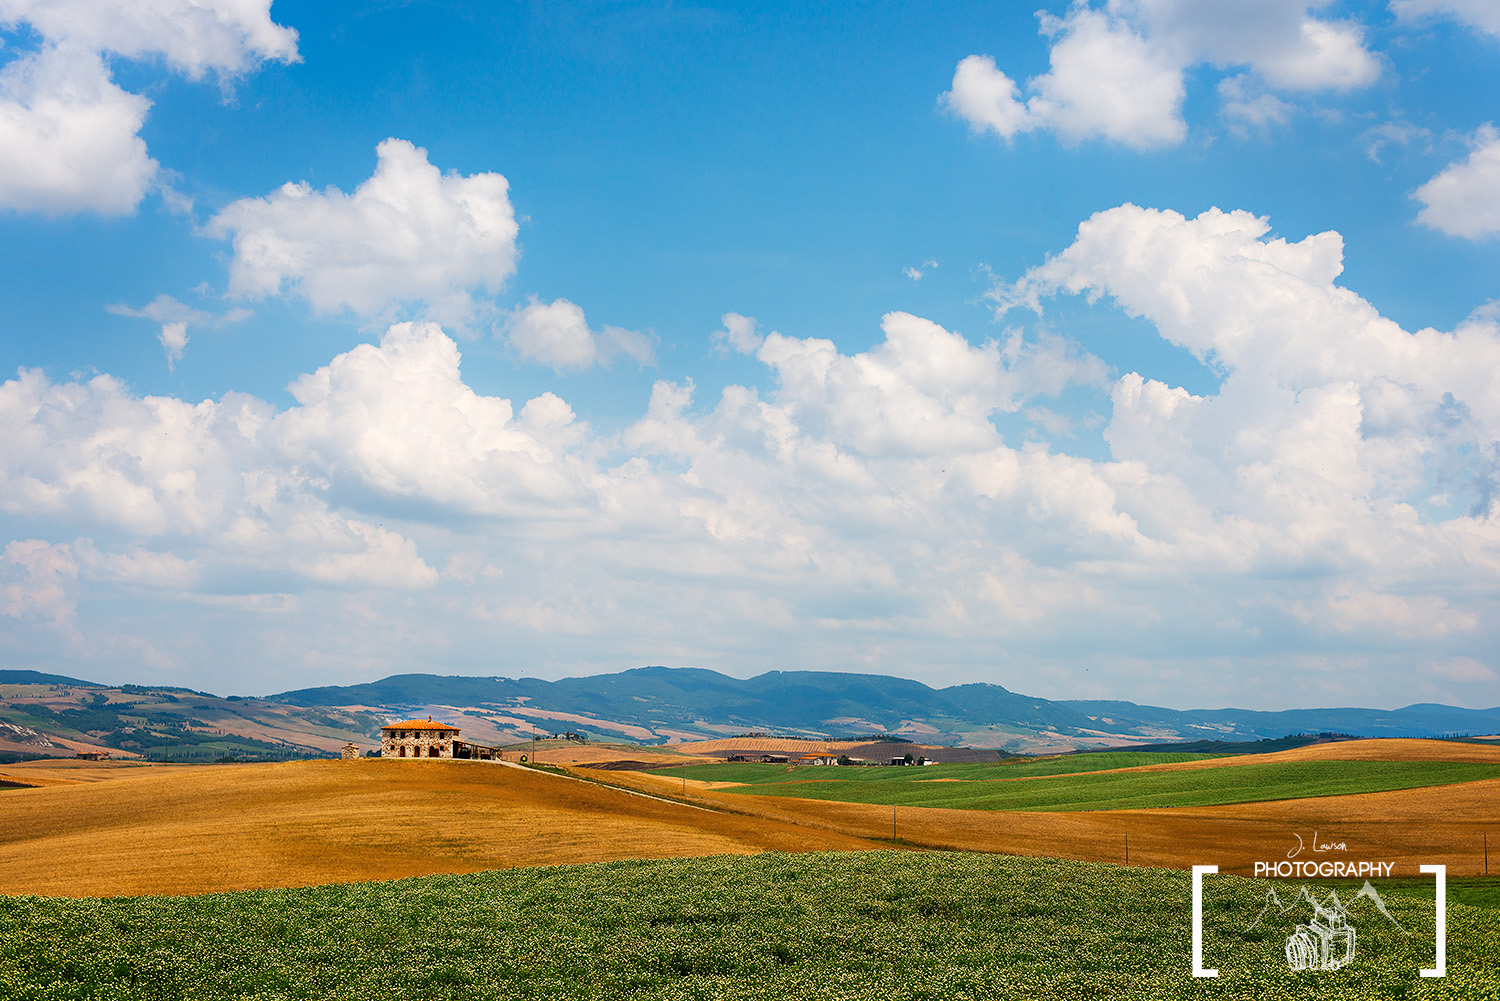 A wide angle view of a Tuscan village in Italy